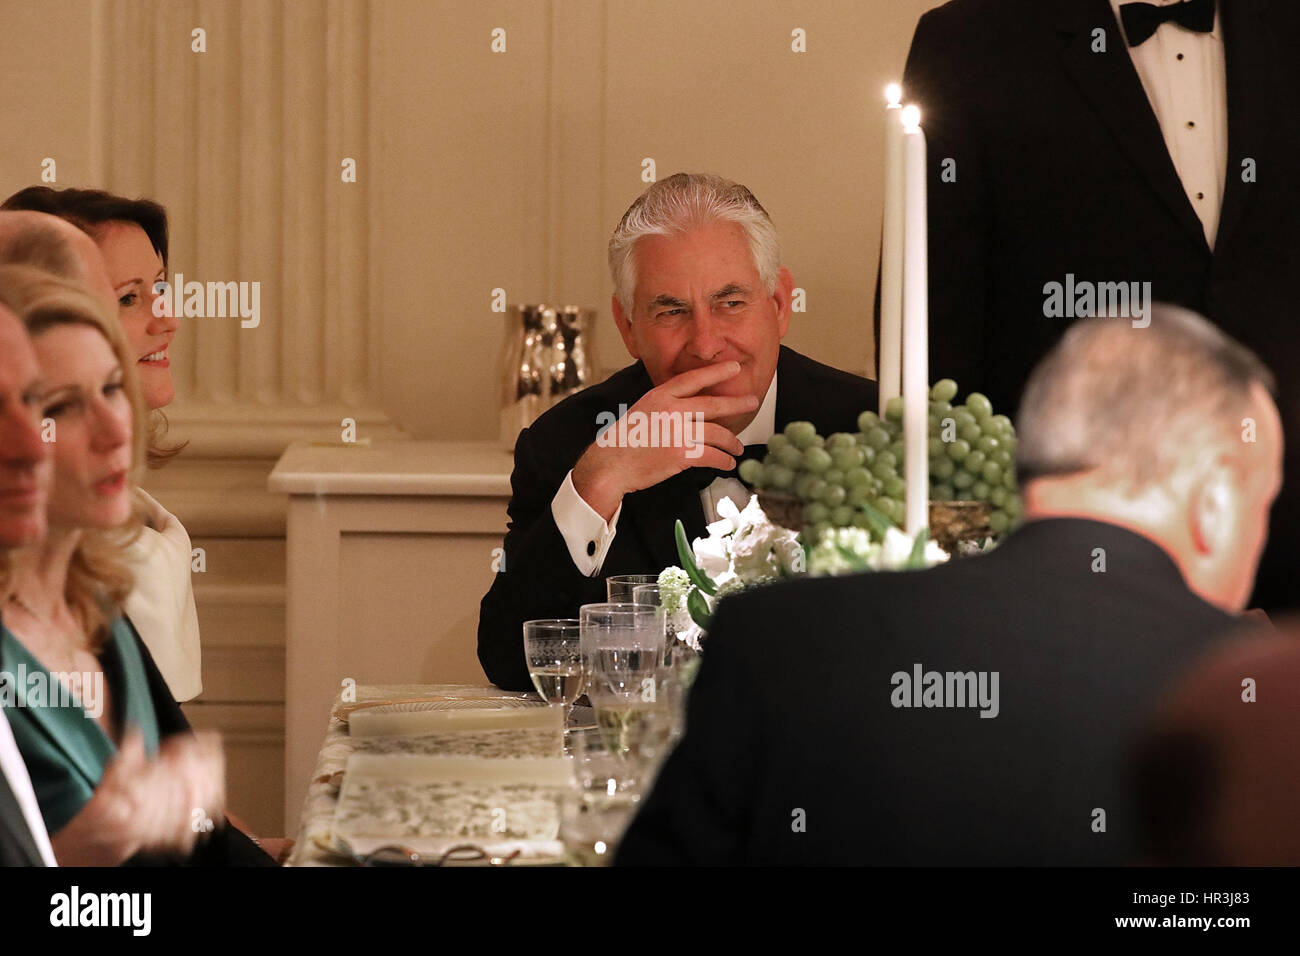 Washington DC, USA. 26th February 2017. United States Secretary of State Rex Tillerson attends the annual Governors - Stock Image